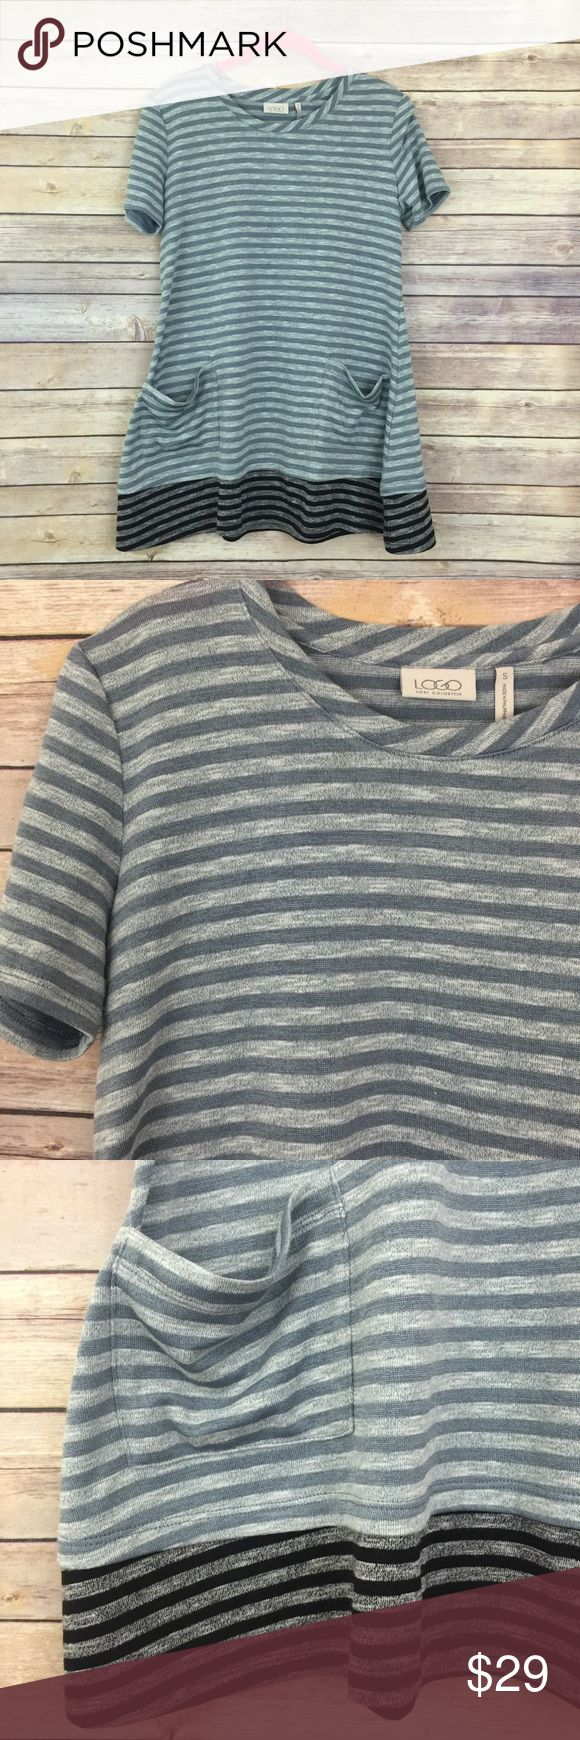 """LOGO by Lori Goldstein striped knit top w/contrast This LOGO by Lori Goldstein short sleeve knit top is still available on the QVC website for full price! It's super cute a-line style makes it flowy and cute to layer over leggings or skinny jeans!  Fit: semi-fitted Length: 28-1/2""""  Content: 71% polyester/24% cotton/5% spandex LOGO by Lori Goldstein Tops Tunics"""